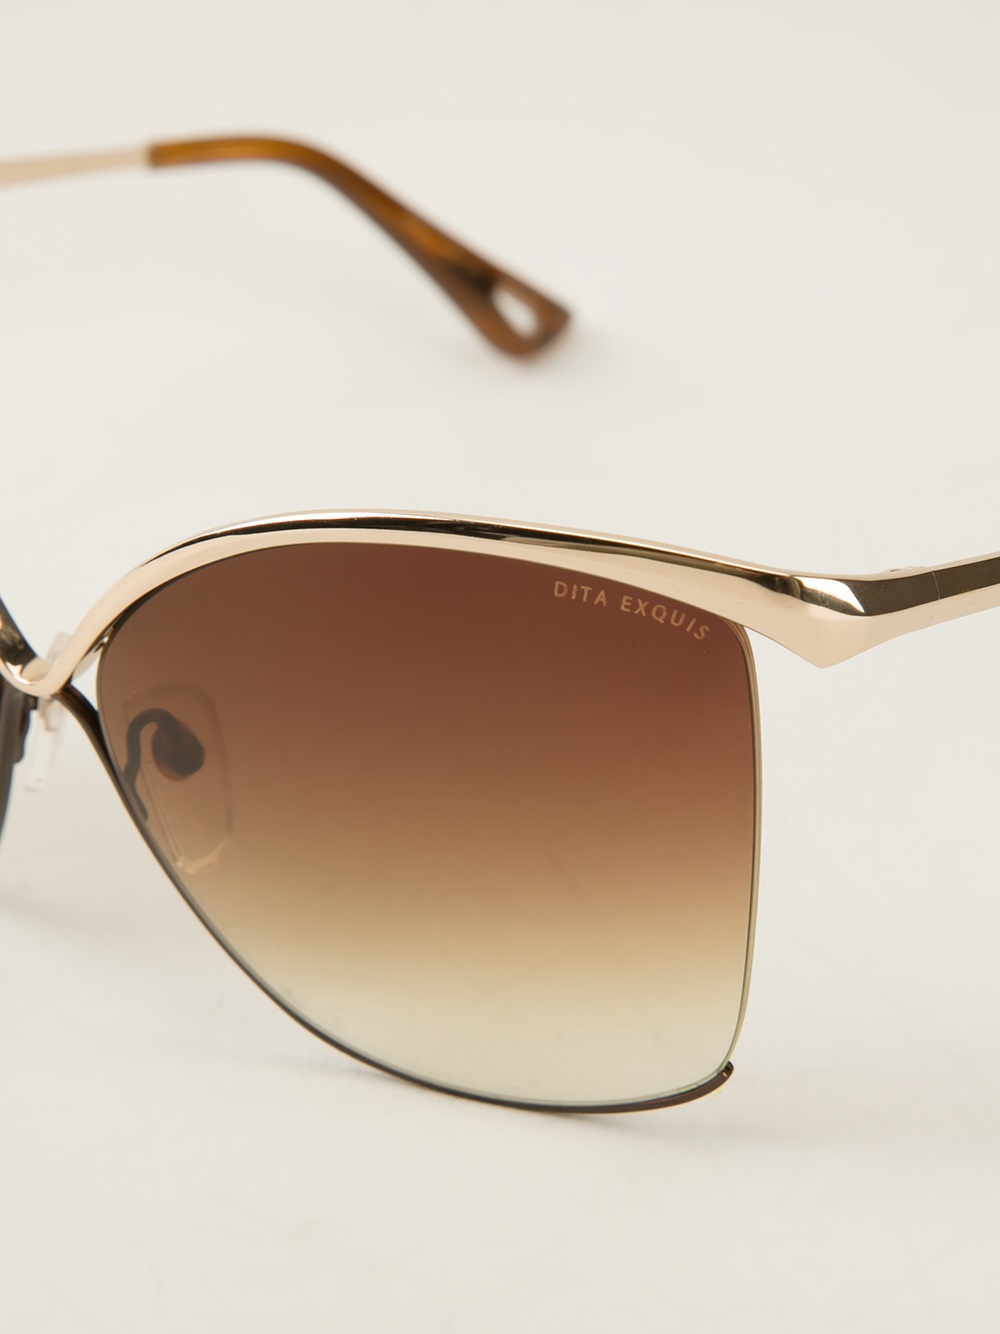 Dita eyewear Dita Exquis Sunglasses in Brown | Lyst Dita Eyewear